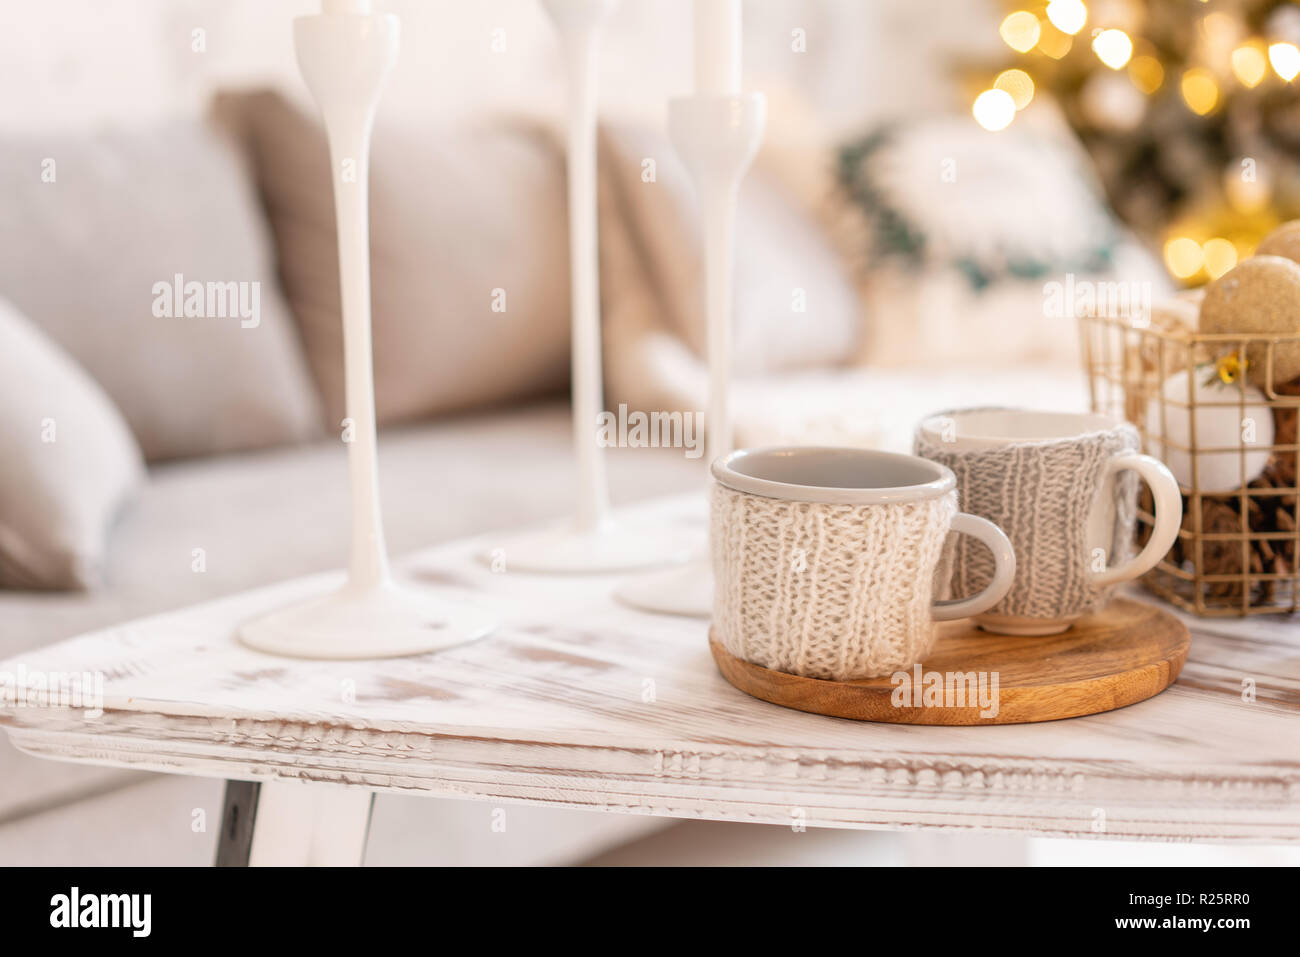 Knitted woolen cups on a wooden table. two cups of hot coffee. the concept of heat. holidays and events. Autumn and winter, leisure concept. Cozy, comfy, soft. - Stock Image